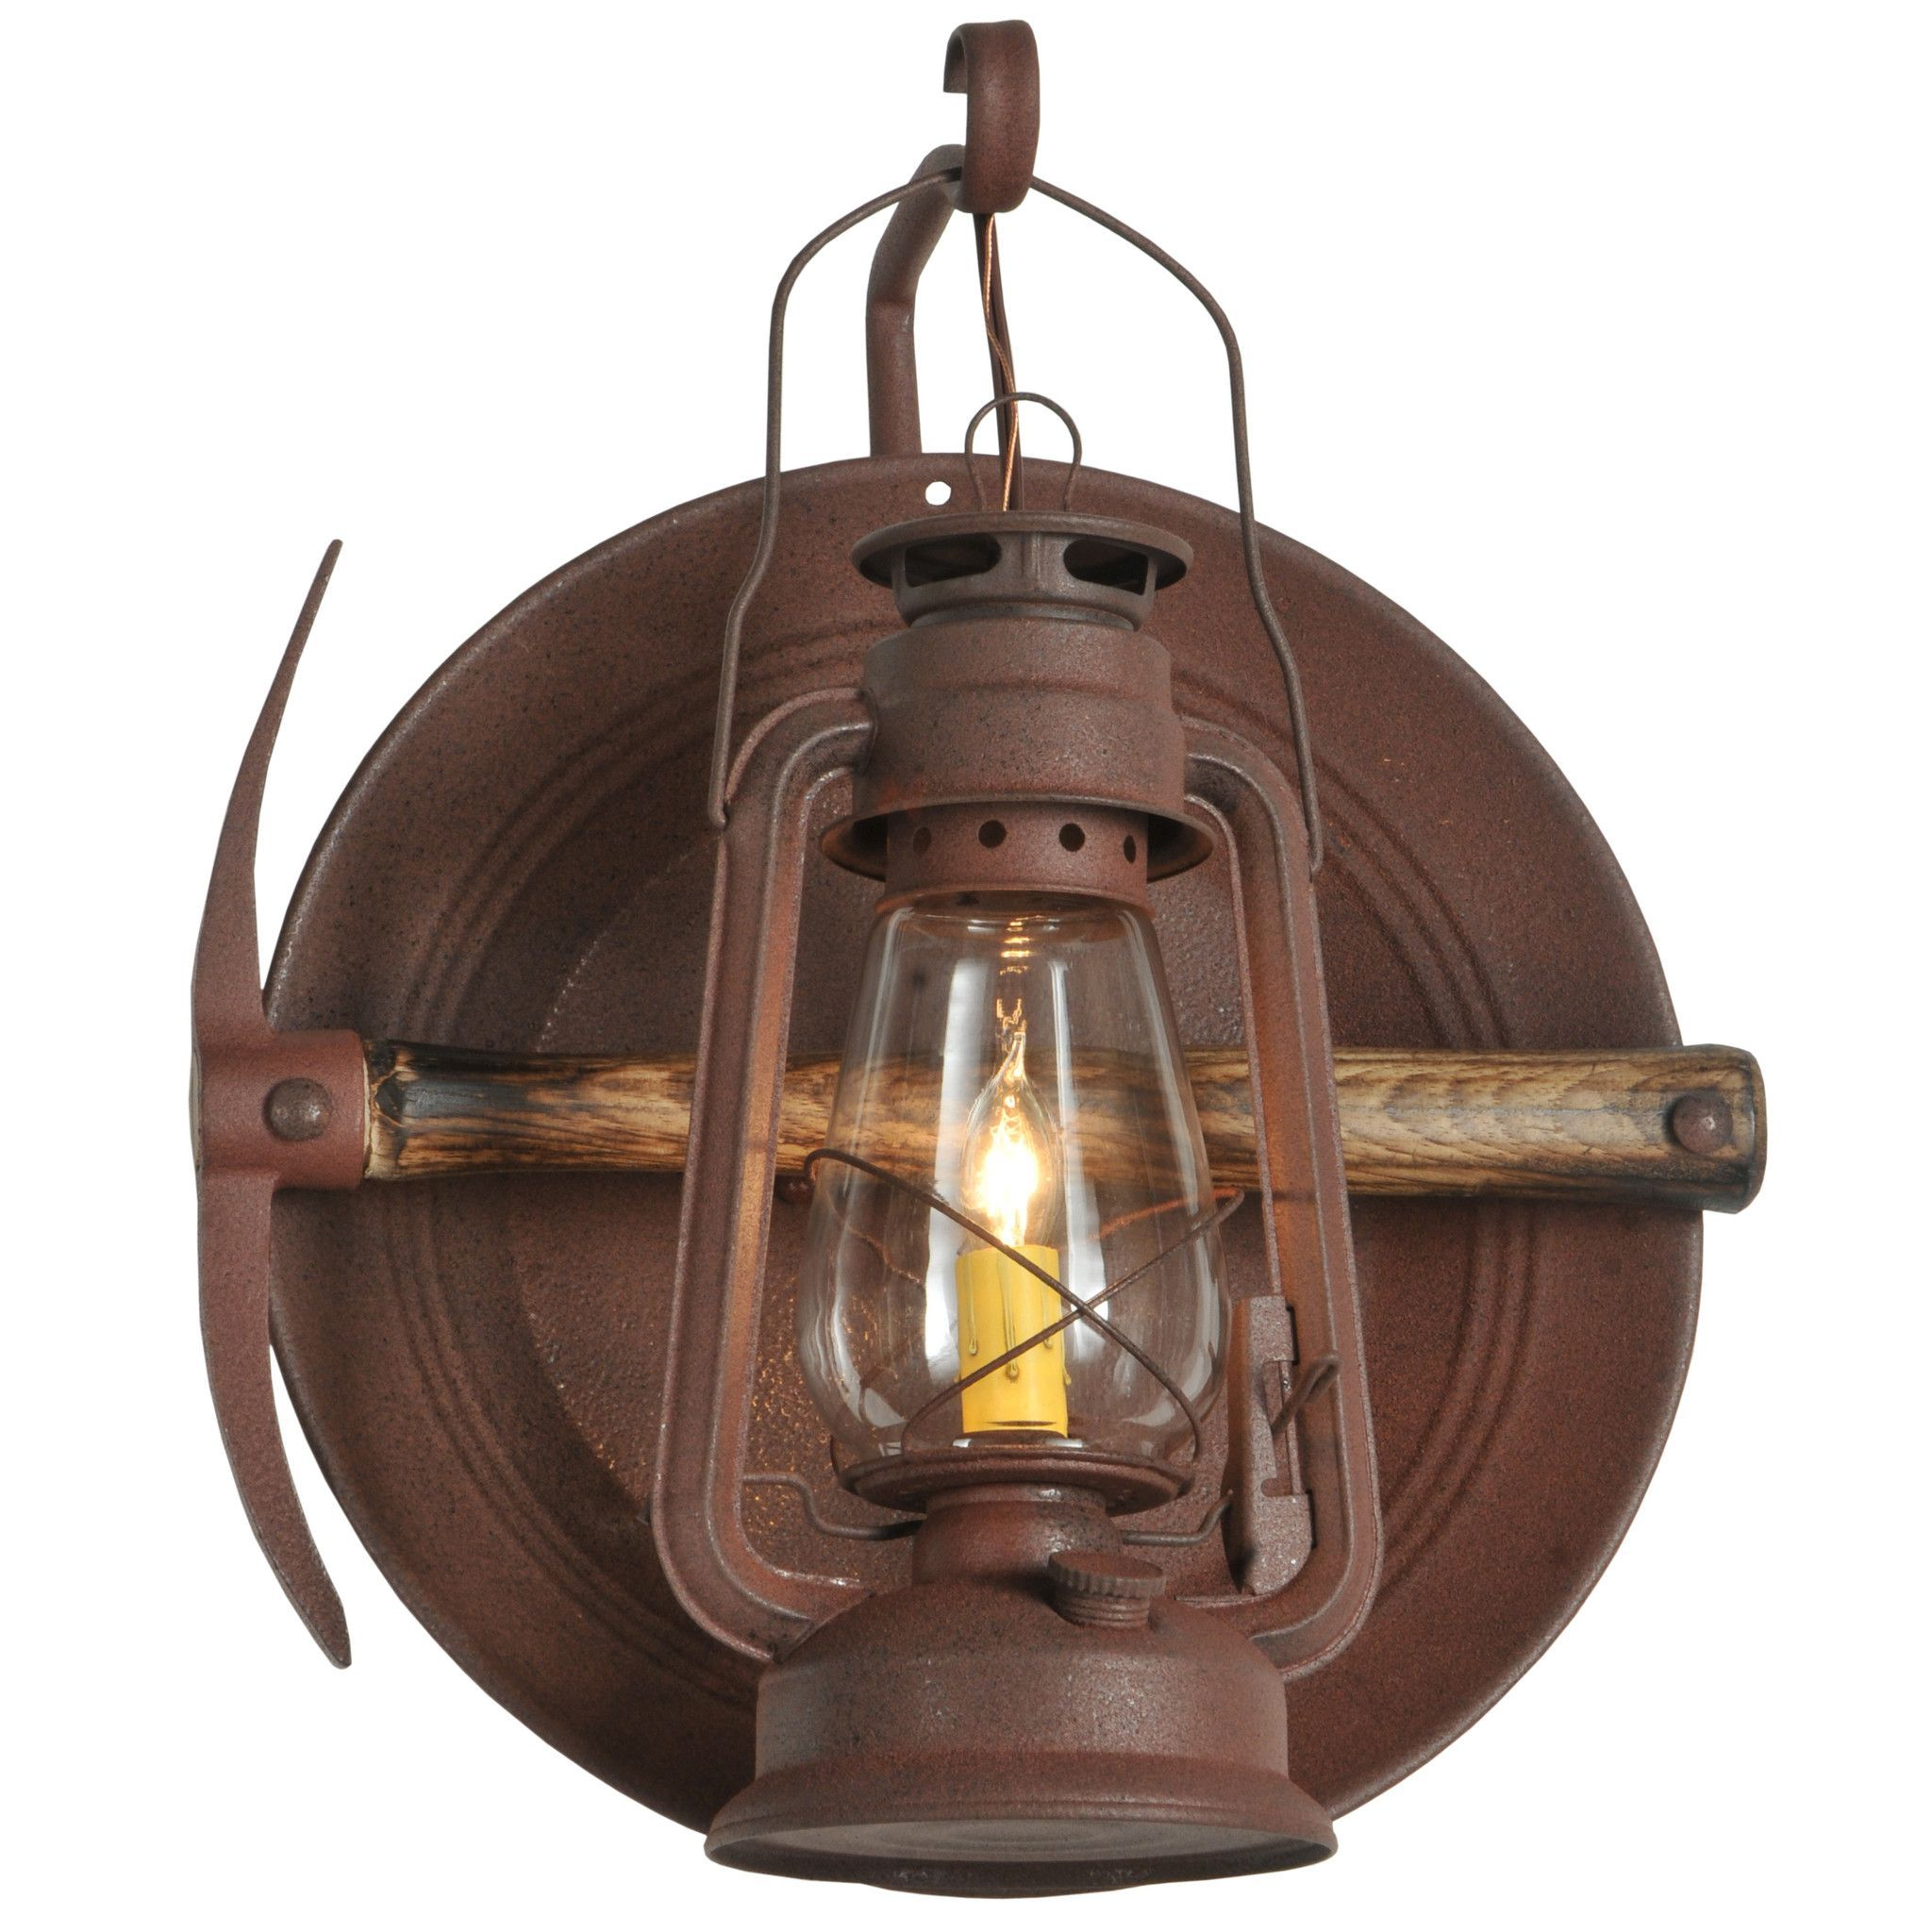 exterior fixtures wall light lighting for house chandeliers photos rustic chandelierern ideas cabin interior bathrooms sconces design decorating bathroom decor interiors home lightingr sconce